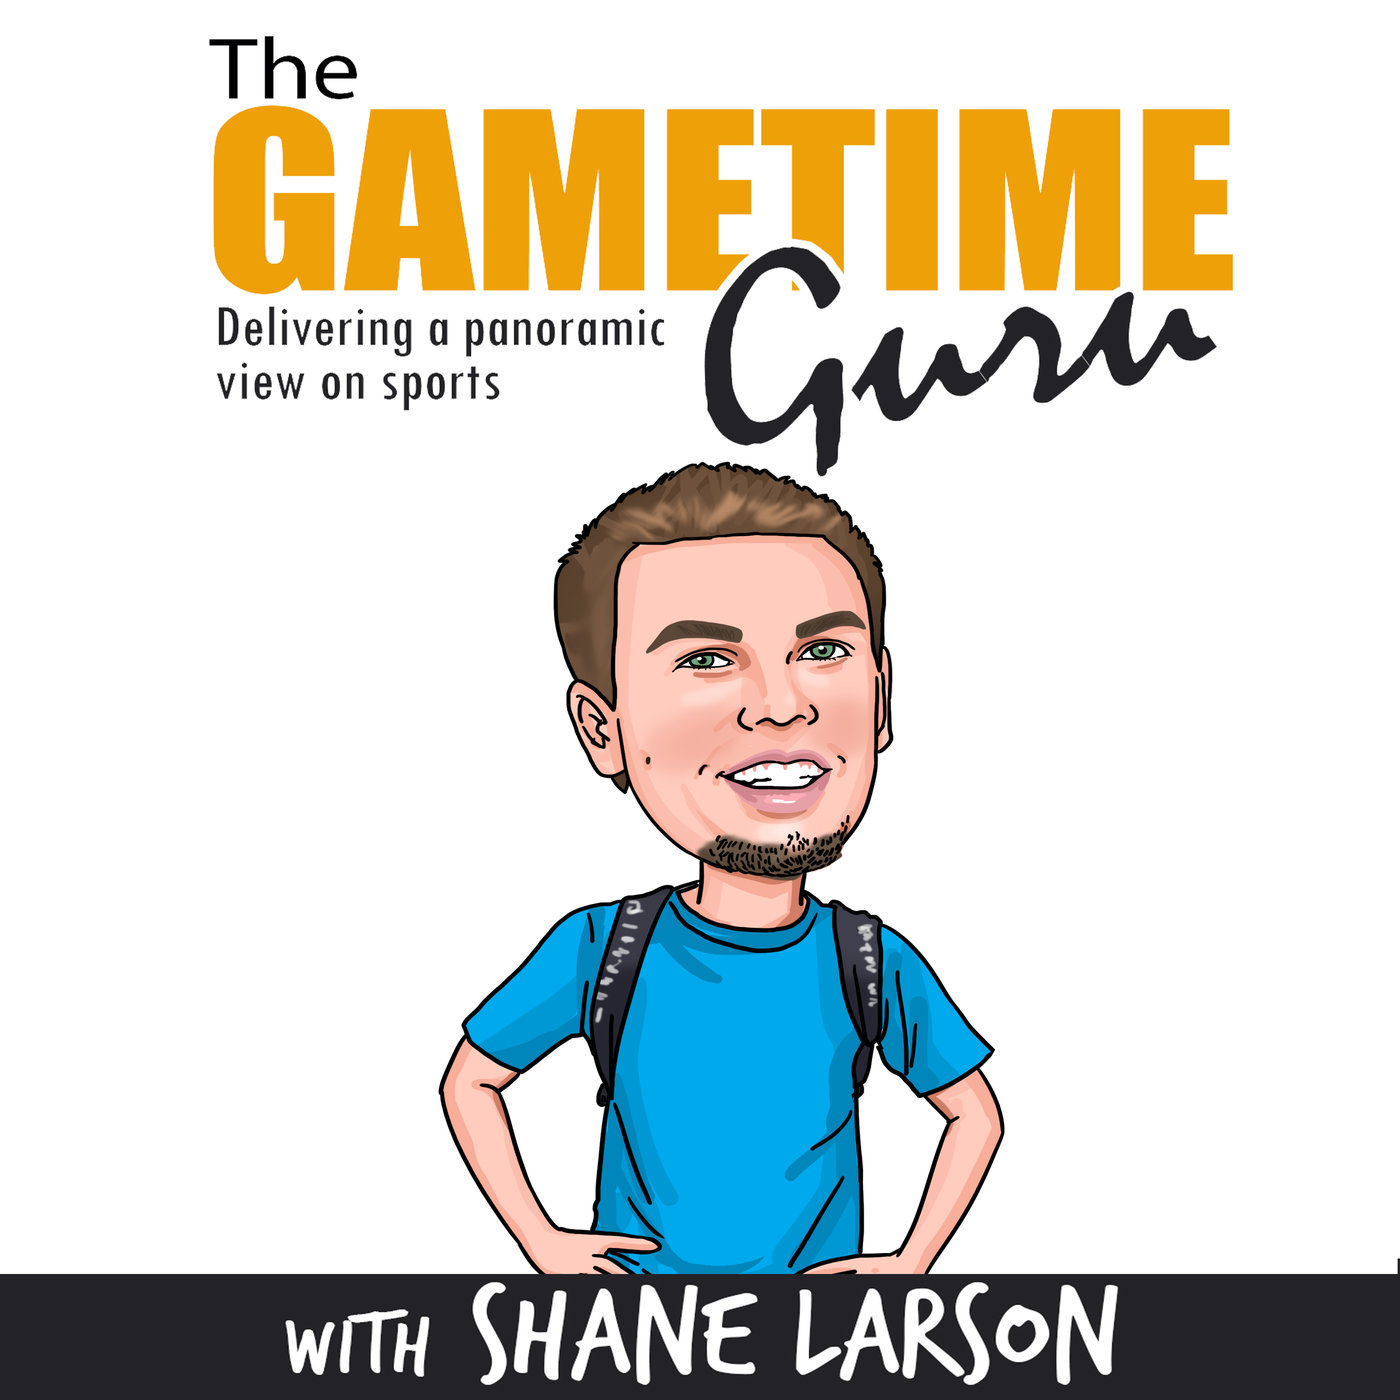 The Gametime Guru show art